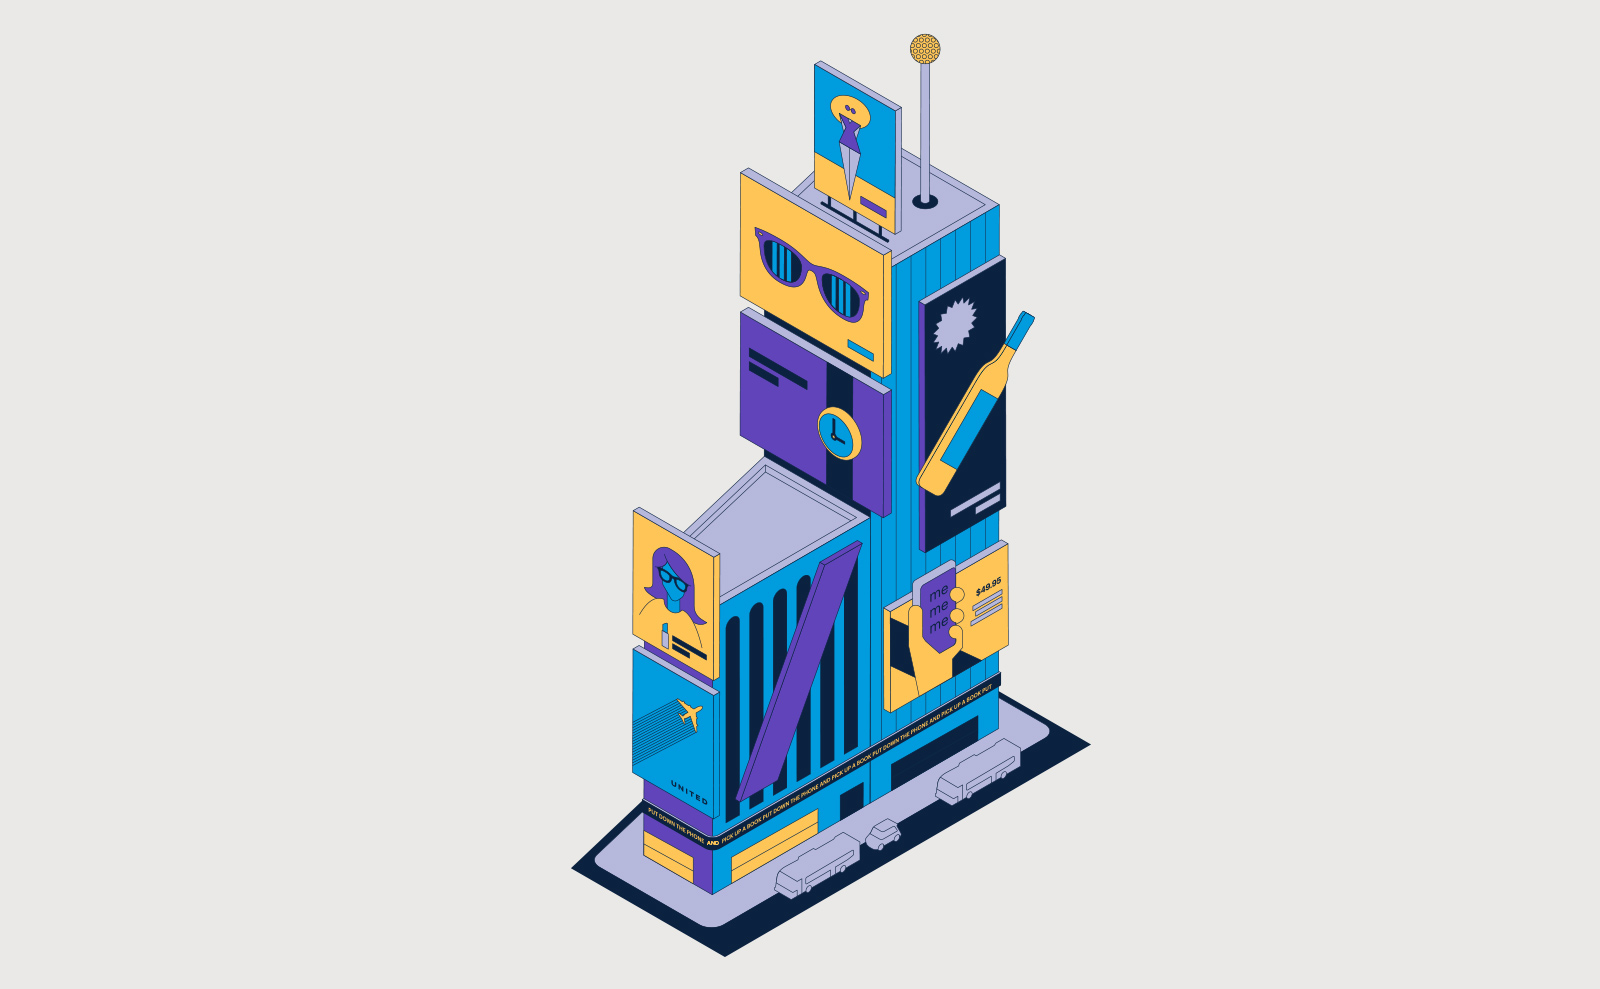 NYC Times Square illustration